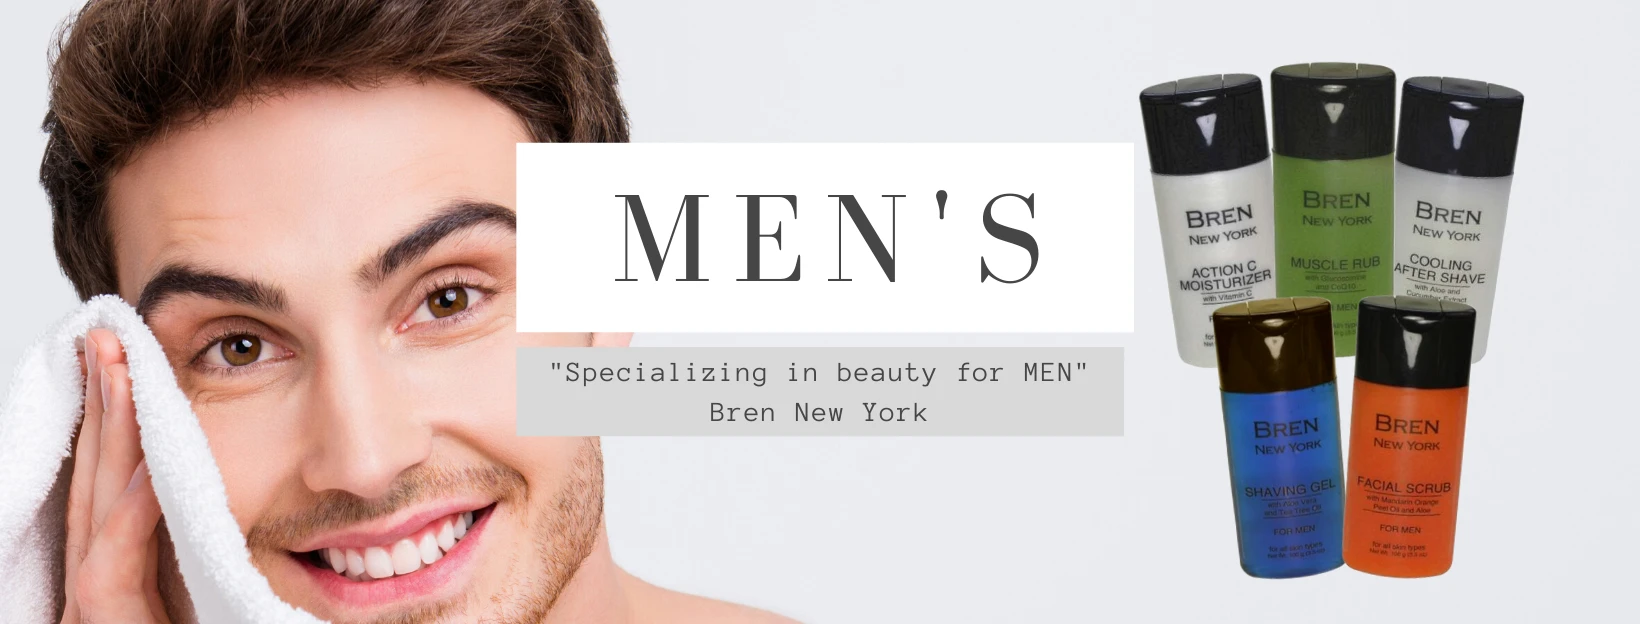 Skincare for men is best if kept simple. Include a shaving gel, aftershave, moisturizer and facial scrub